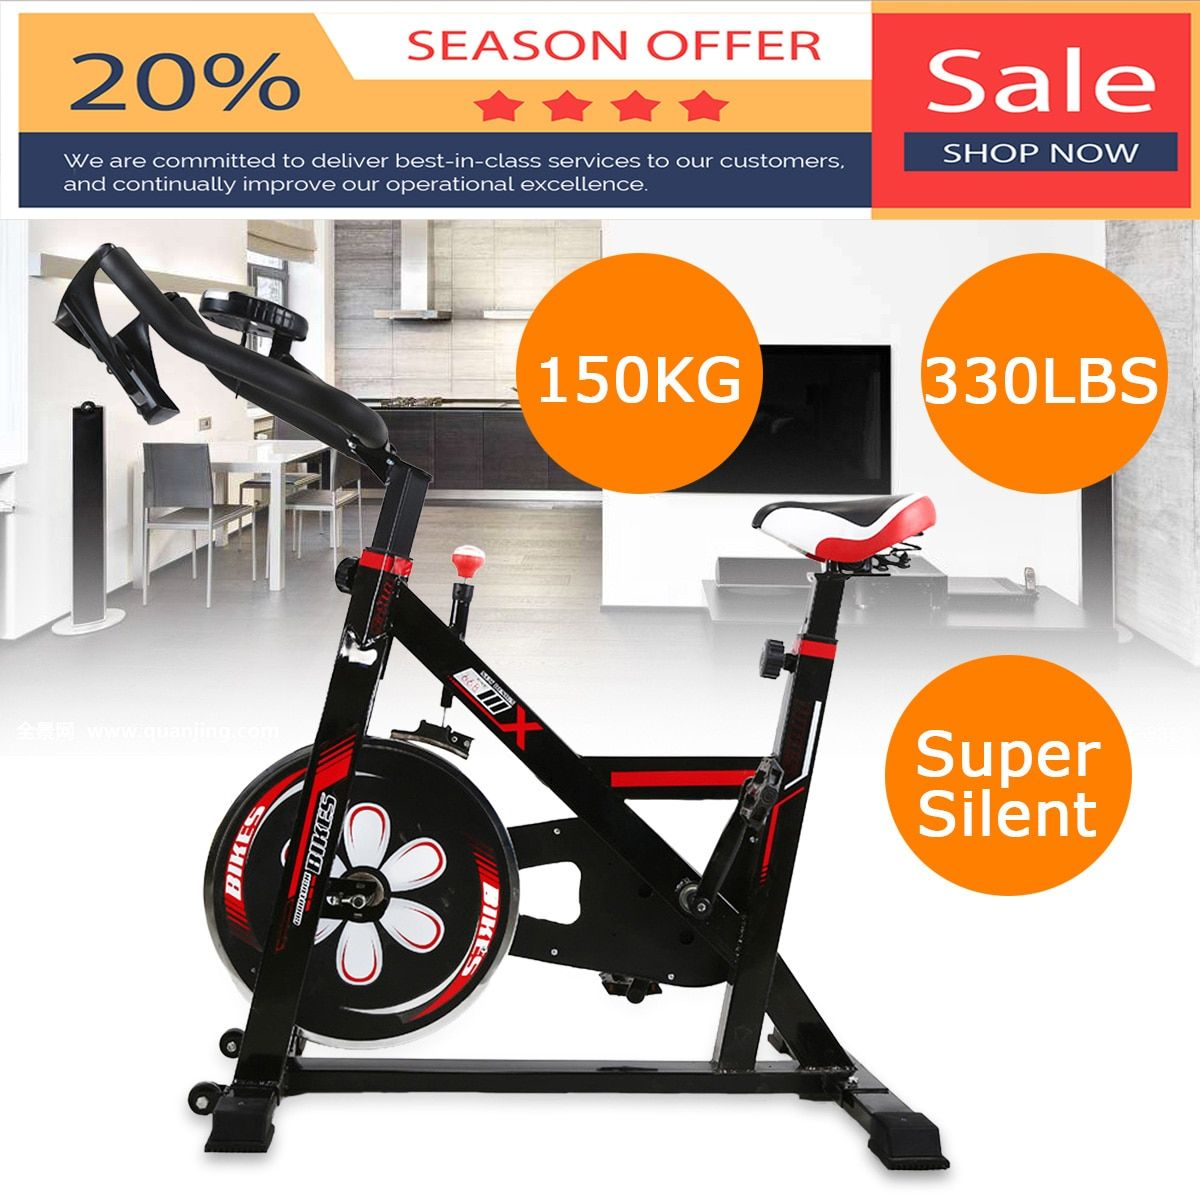 Fitness Bike Indoor Cycling Exercise Equipment With The Electronic Display Screen The Indoor Cycling Ultra-Quiet Bicycle Trainer